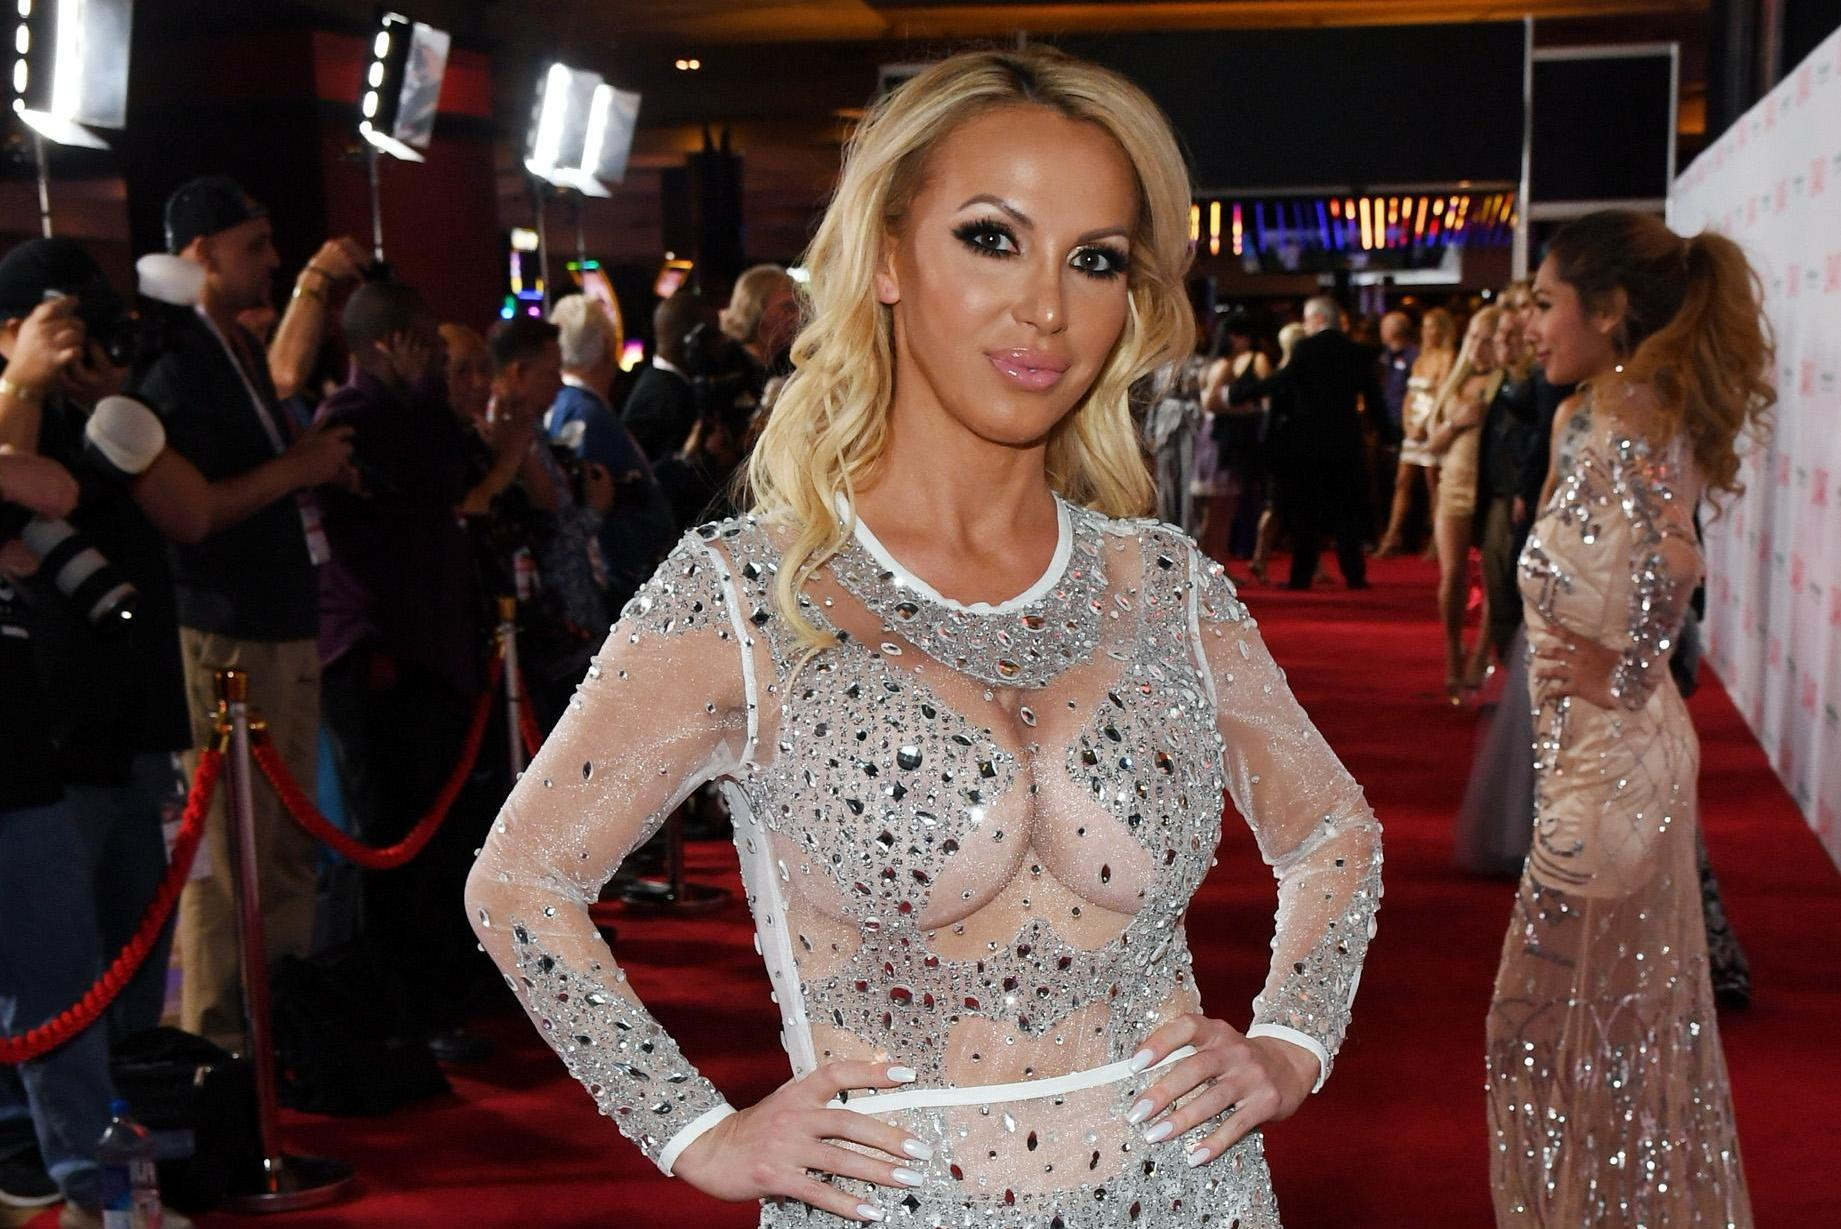 Etleboro Org Who Is Nikki Benz Porn Star Whos Filed Lawsuit Against Brazzers Director Tony T And Co Performer Ramon Nomar